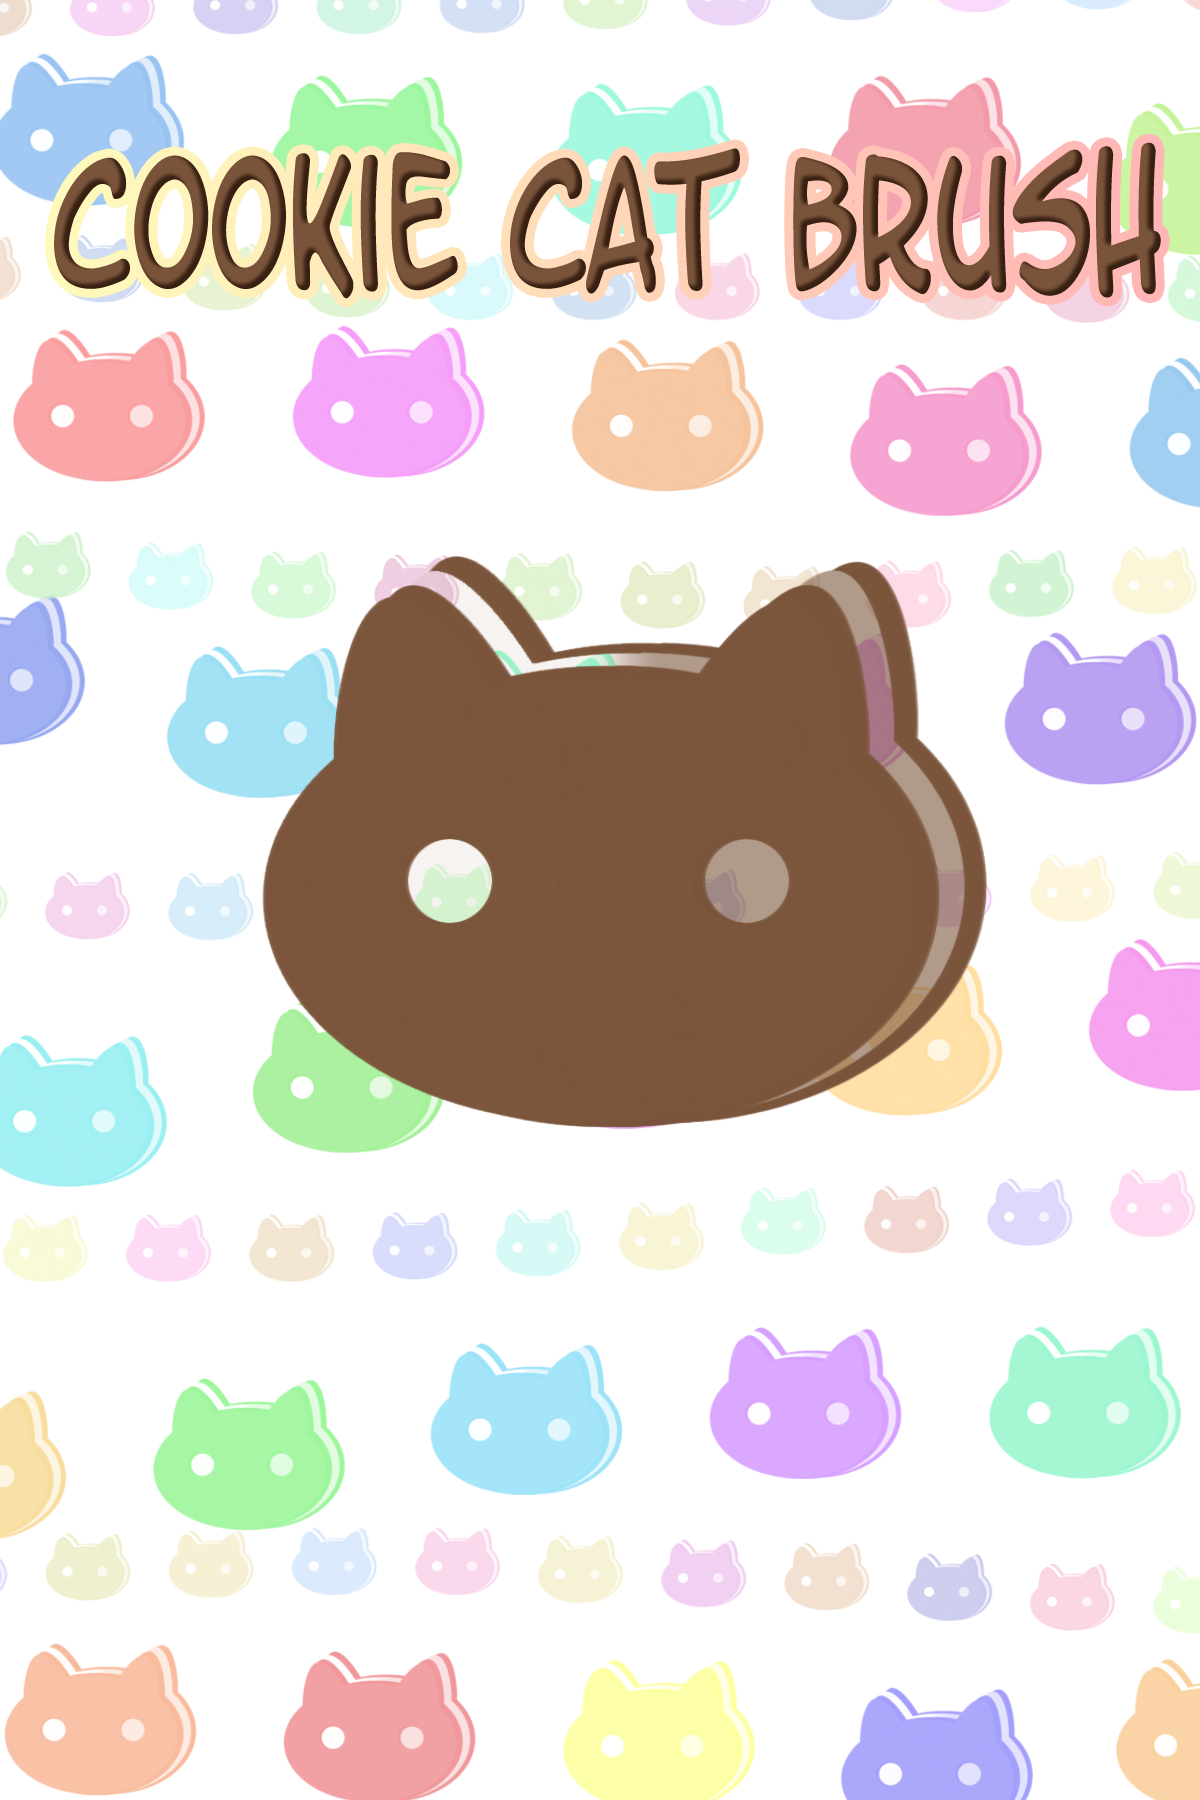 Cookie Cat BRUSH PS by Kafae-Latte